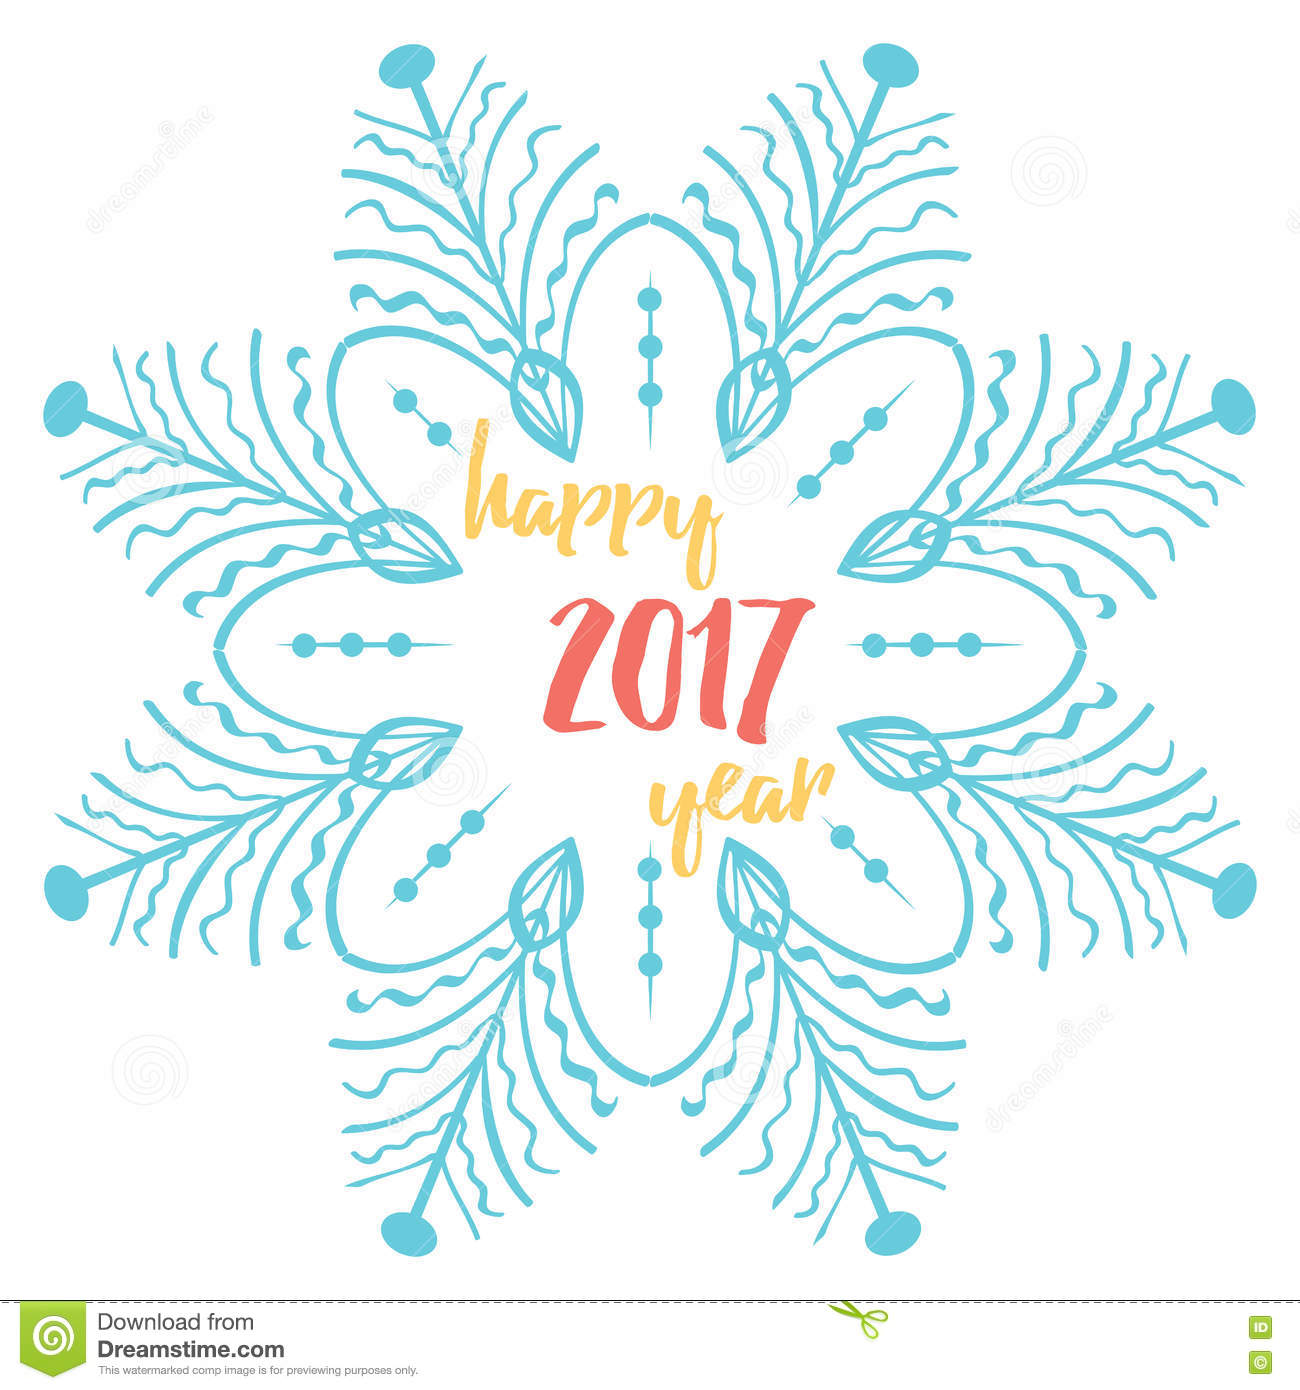 Happy new year 2017 free card new year greetings screenshot 2017 card decorative greeting hand happy new snowflake text white winter year kristyandbryce Gallery